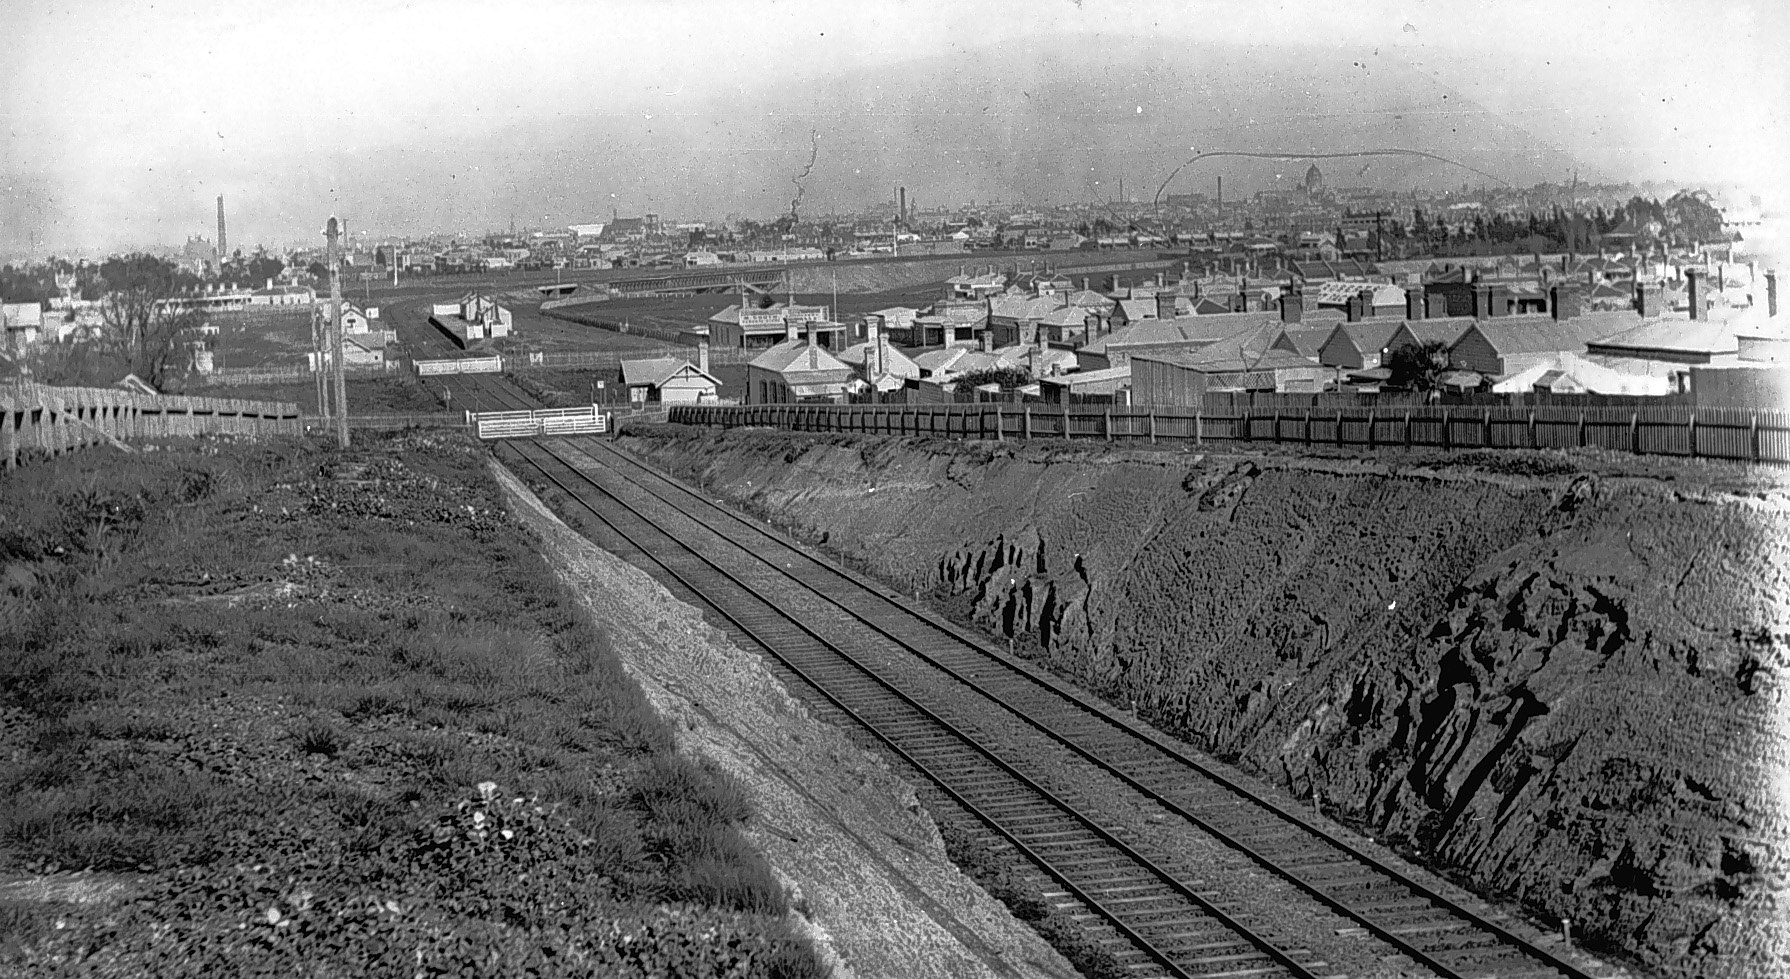 View of Railway Cutting, Northcote, Victoria, 1892. Photo taken facing southwards